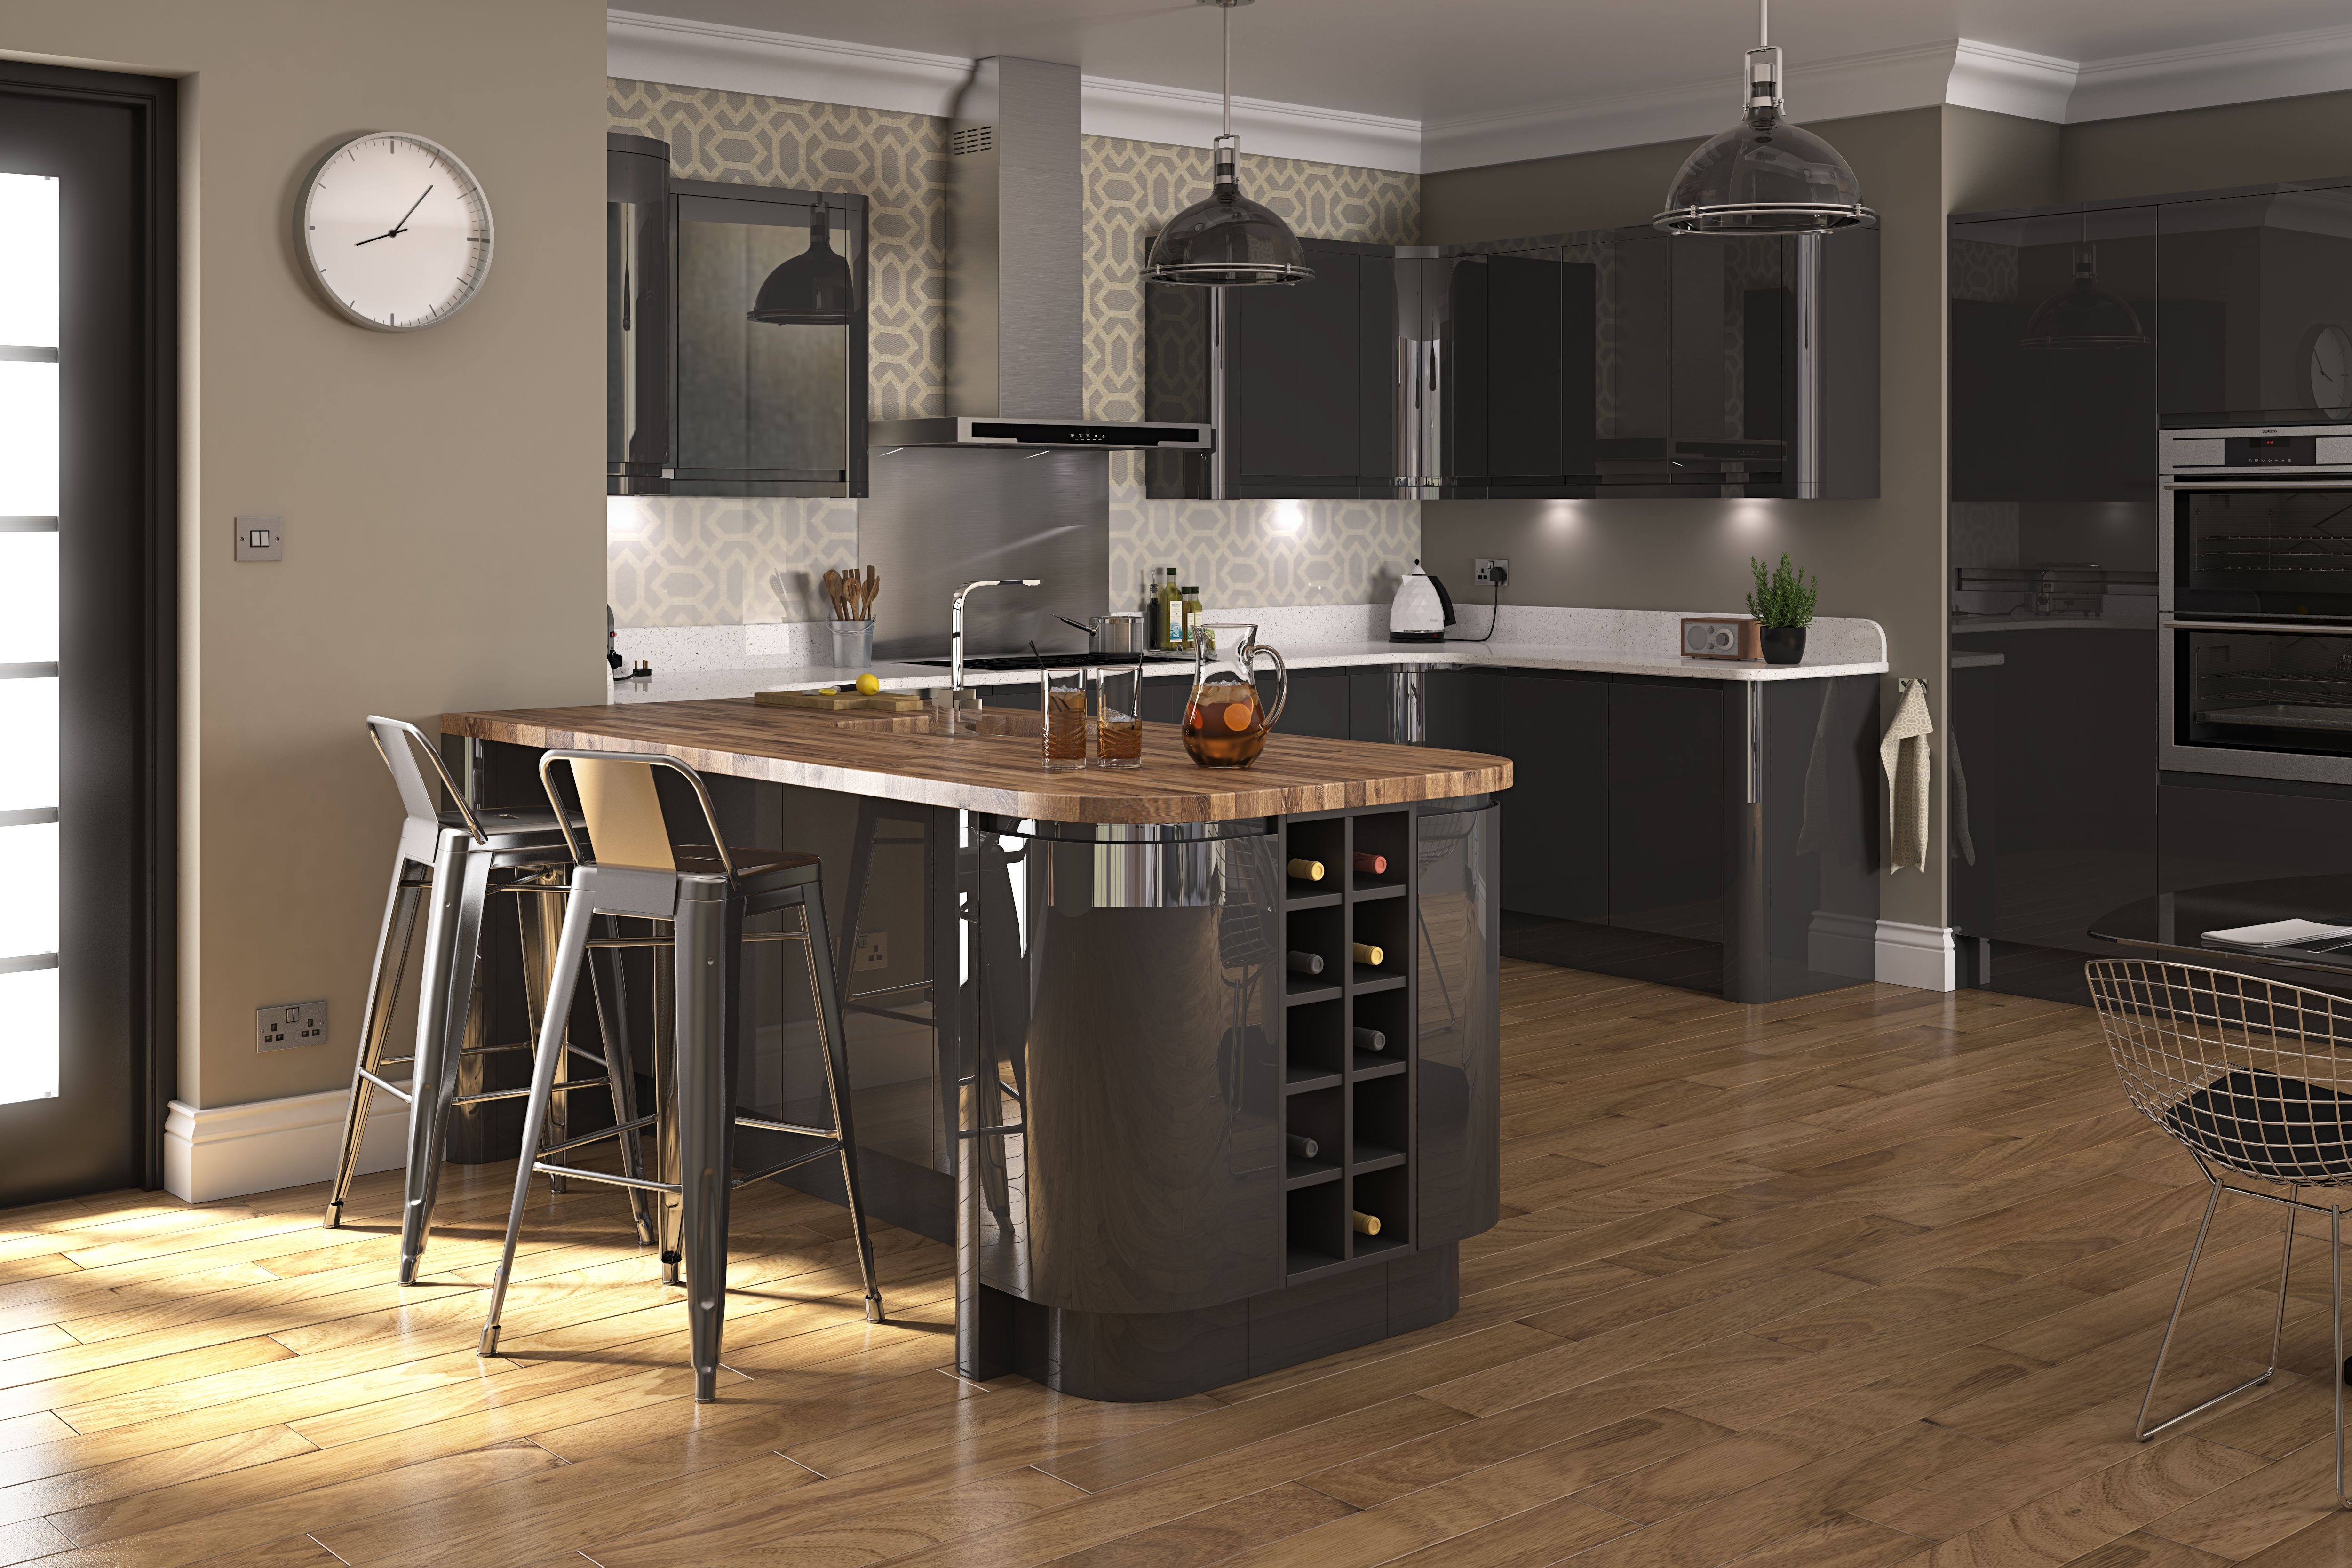 Pin by DIY Kitchens on Kitchen Design Ideas for your home ...